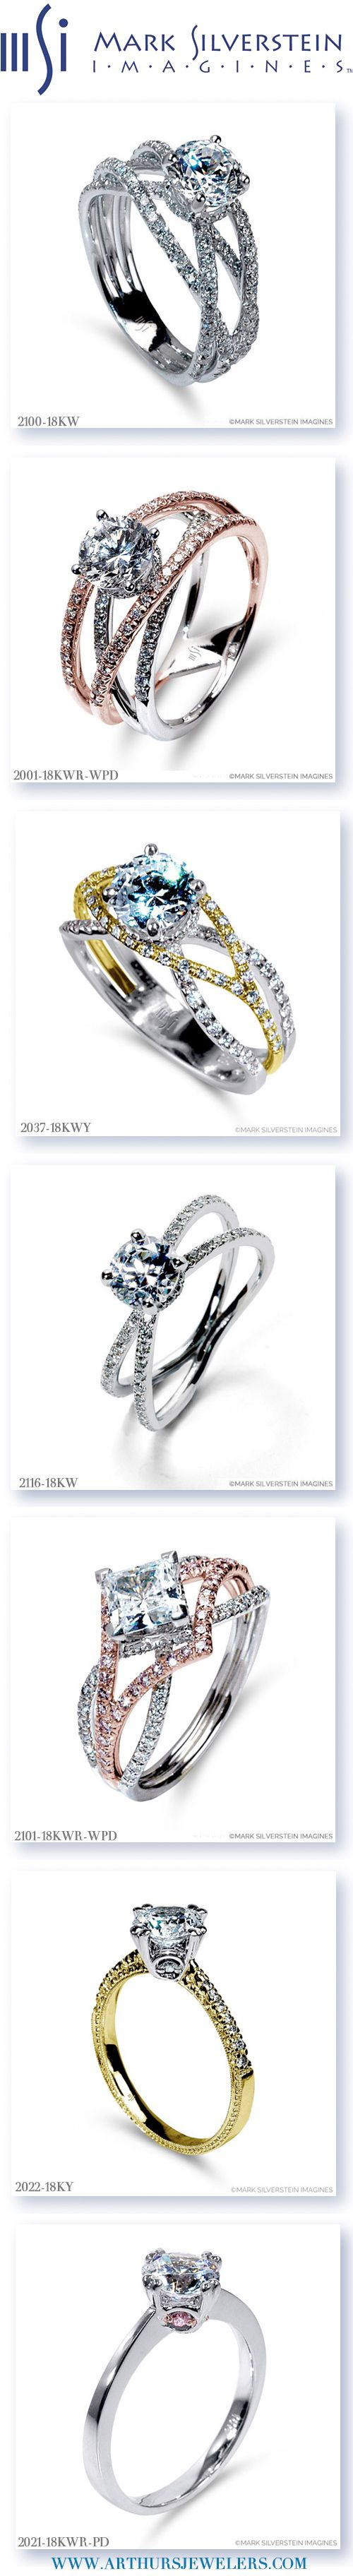 See 7 of the most popular Mark Silverstein Imagines Engagement Rings at Arthur's Jewelers Engagement Ring & Diamond Event on April 24-25, 2015